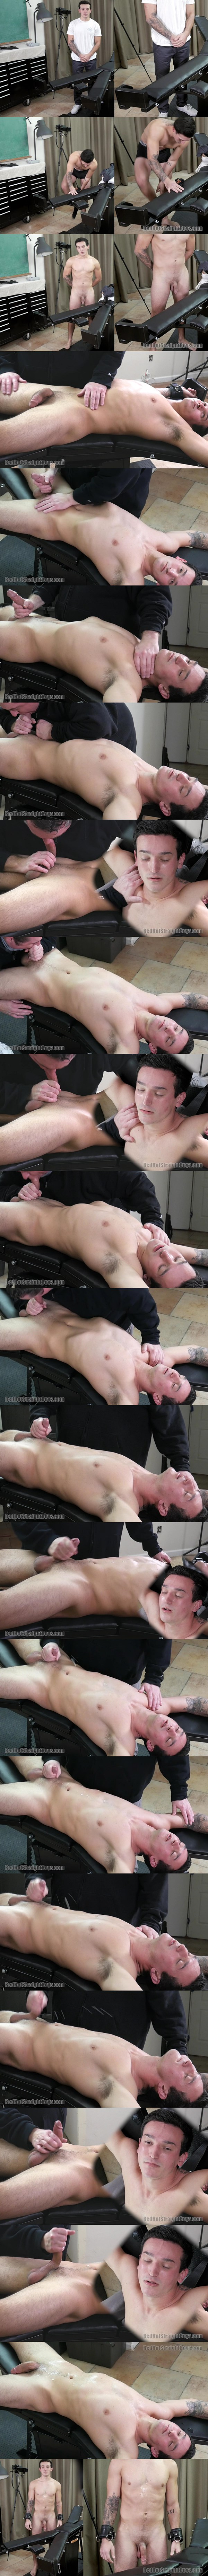 Redhotstraightboys - master Tom sucks and strokes Colby Sawyer's big cock before he milks a juicy load out of Colby's hard cock in Colby's First Gay Blowjob 02